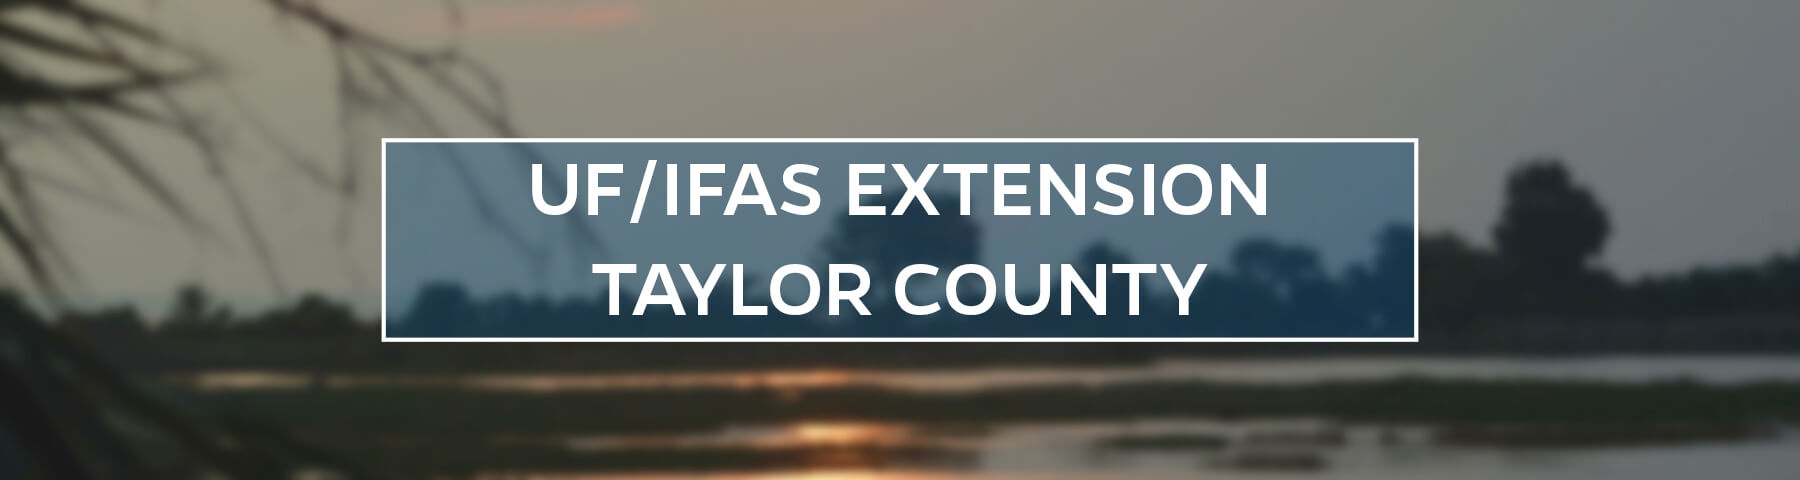 UF/IFAS Extension Taylor County